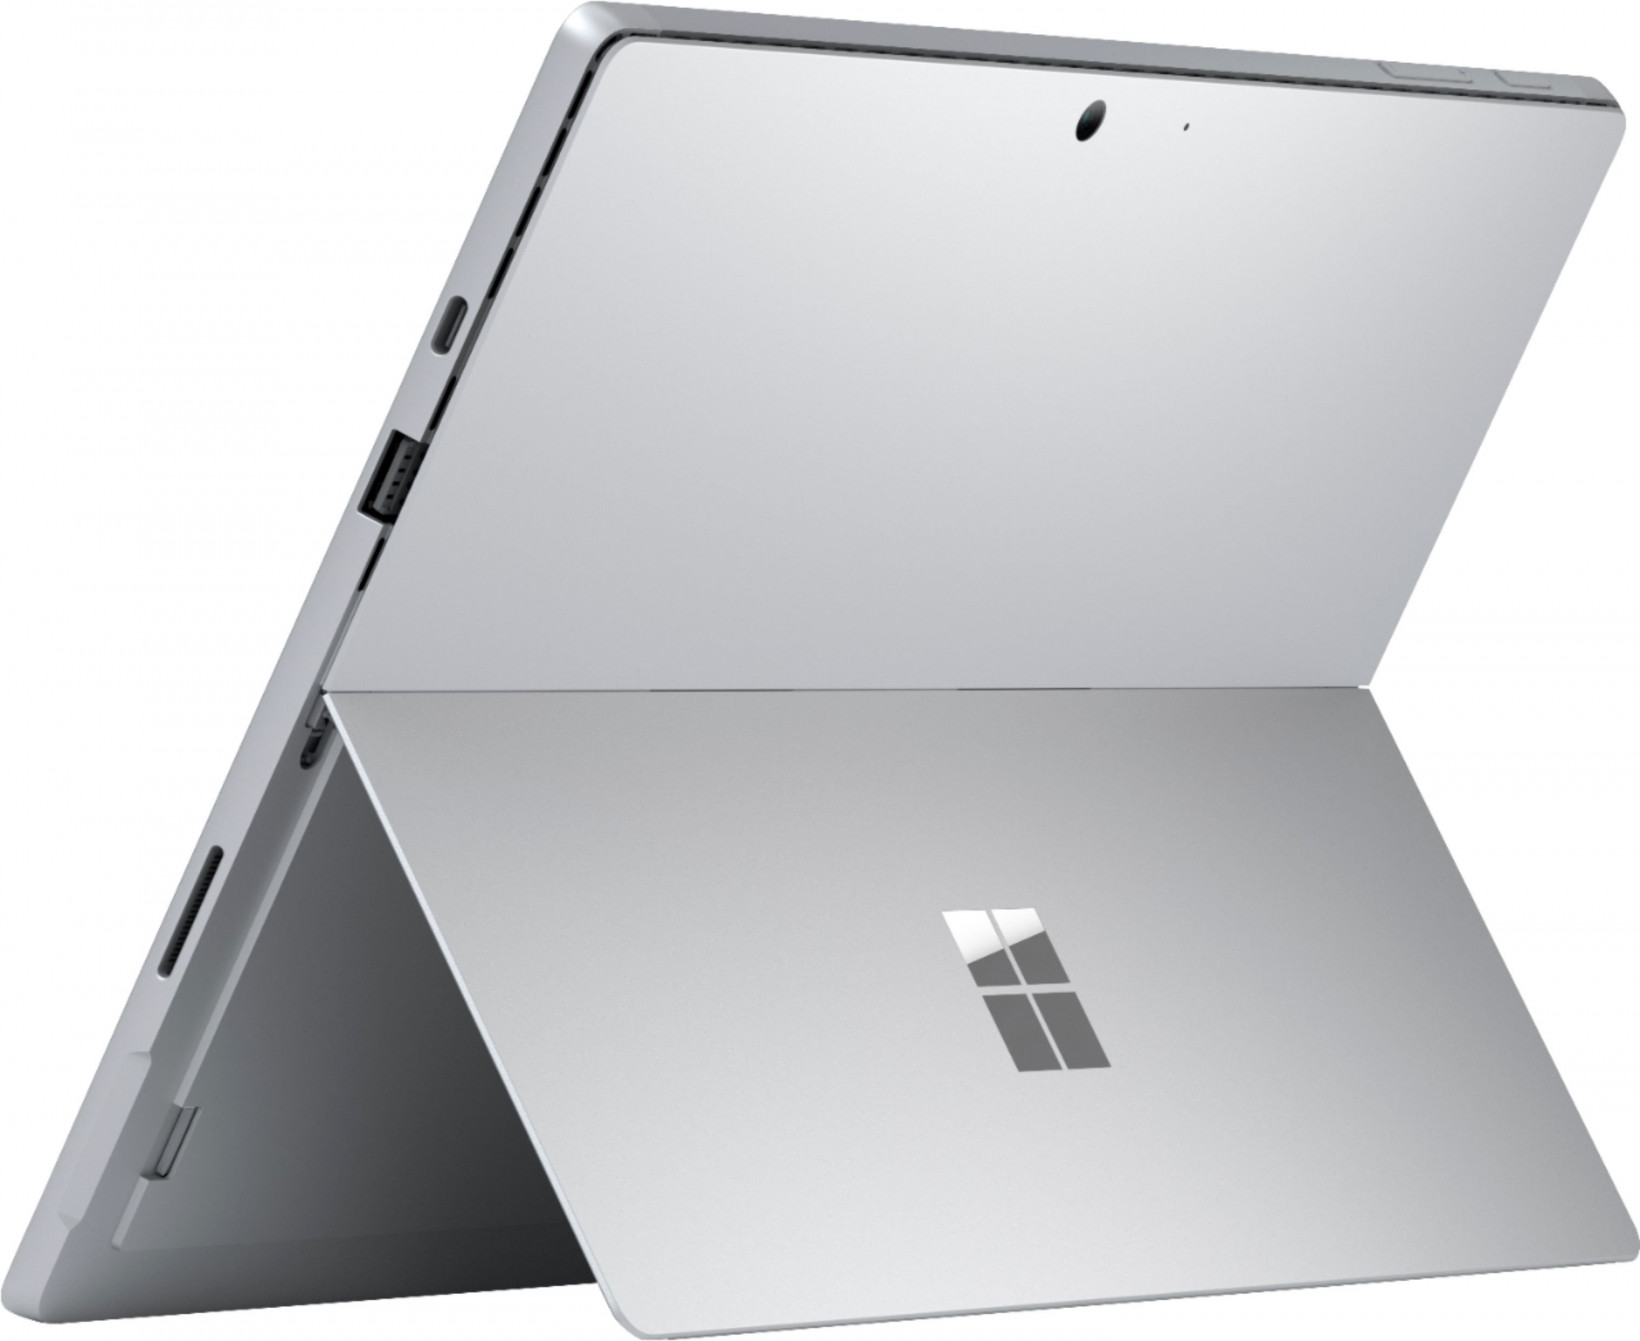 More Microsoft Surface leaks have appeared ahead of tomorrow's launch event